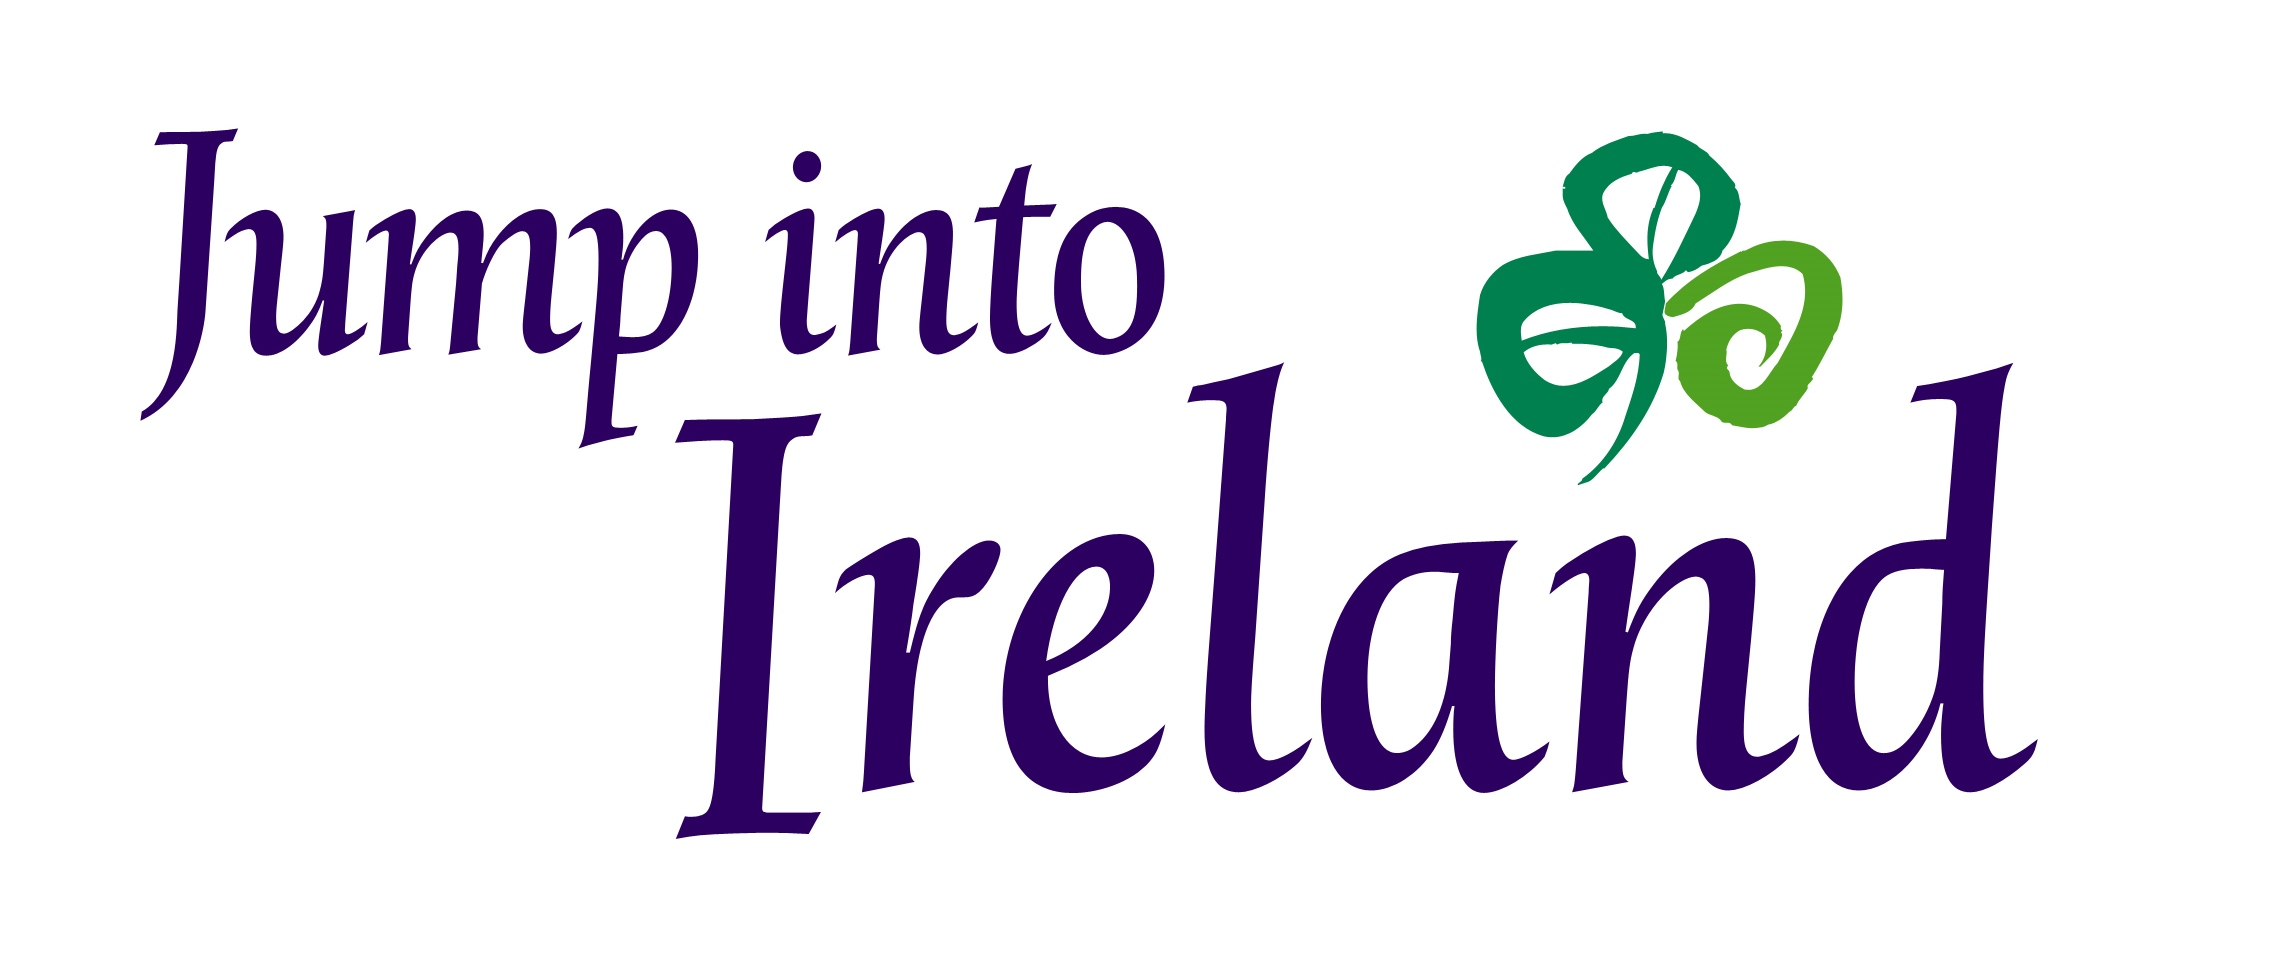 https://www.ireland.com/en-us/?utm_source=scotts-cheap-flights&utm_medium=social&utm_campaign=scotts-cheap-flights&utm_term=organic